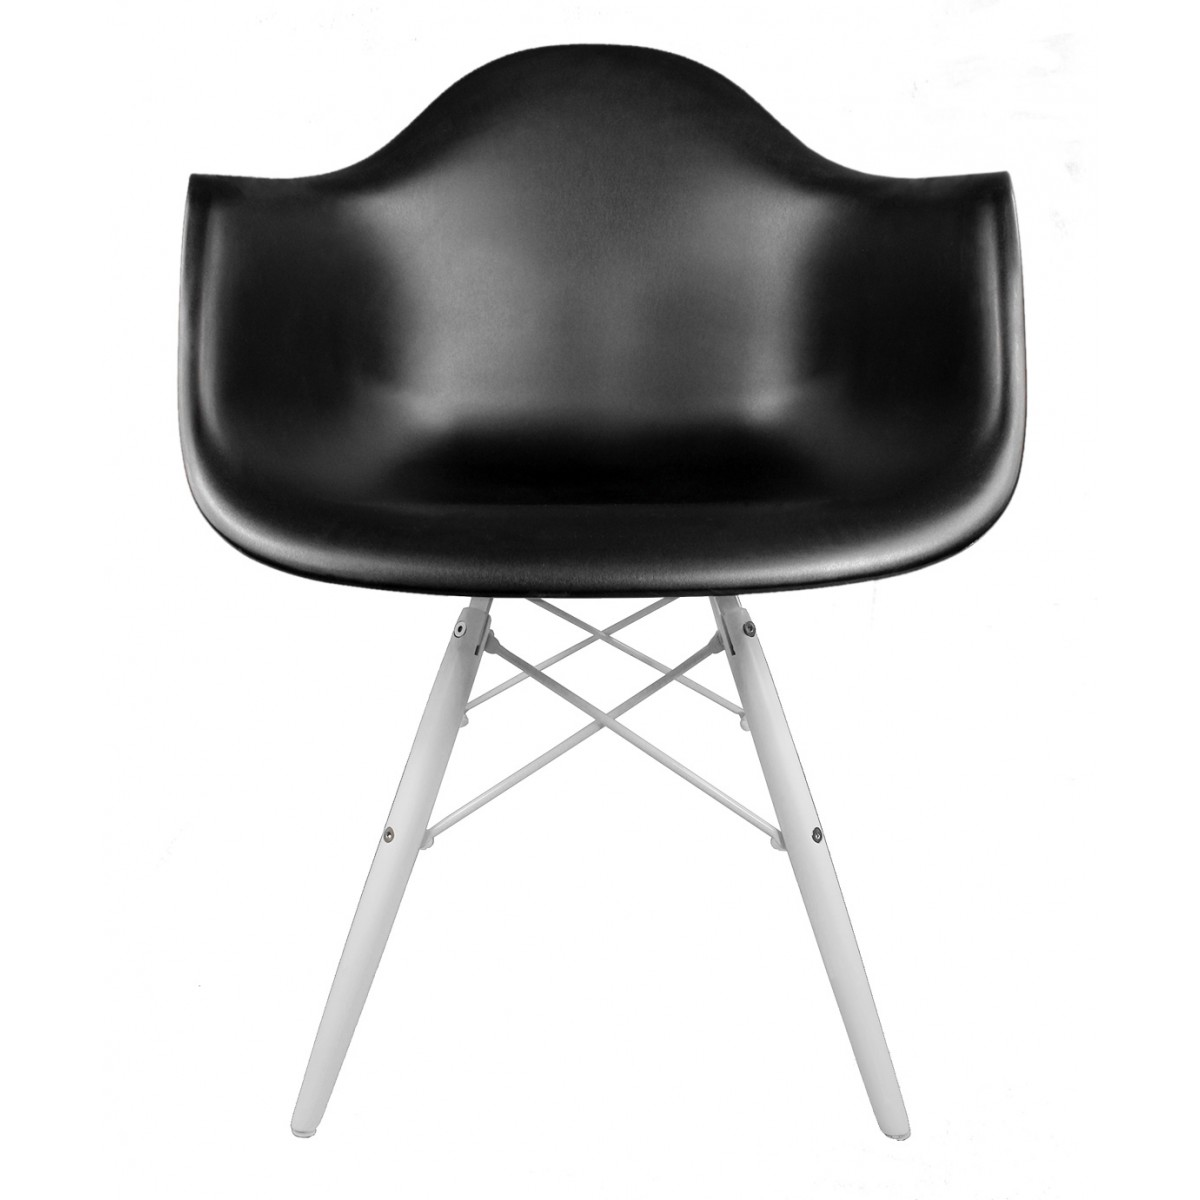 Black plastic chair - With Your Purchase Receive At No Cost